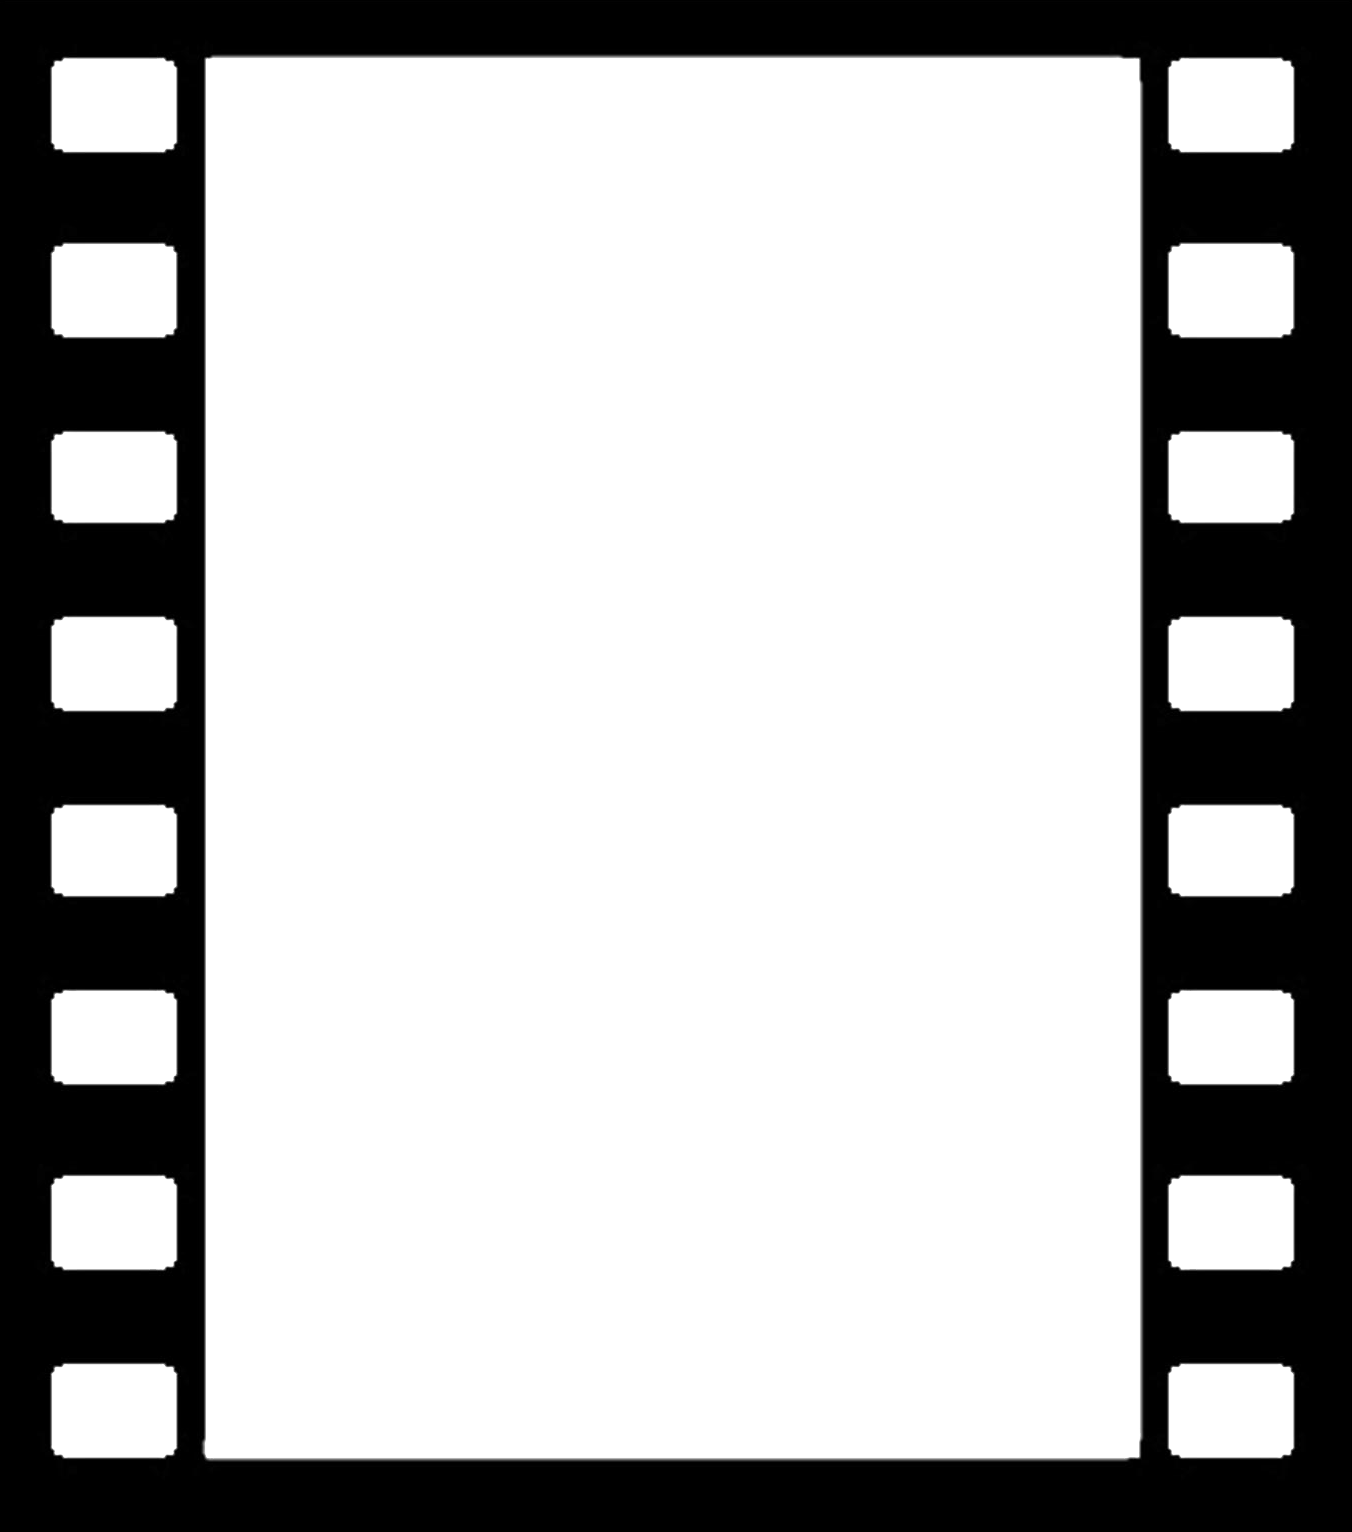 Free Movie Film Cliparts, Download Free Clip Art, Free Clip.